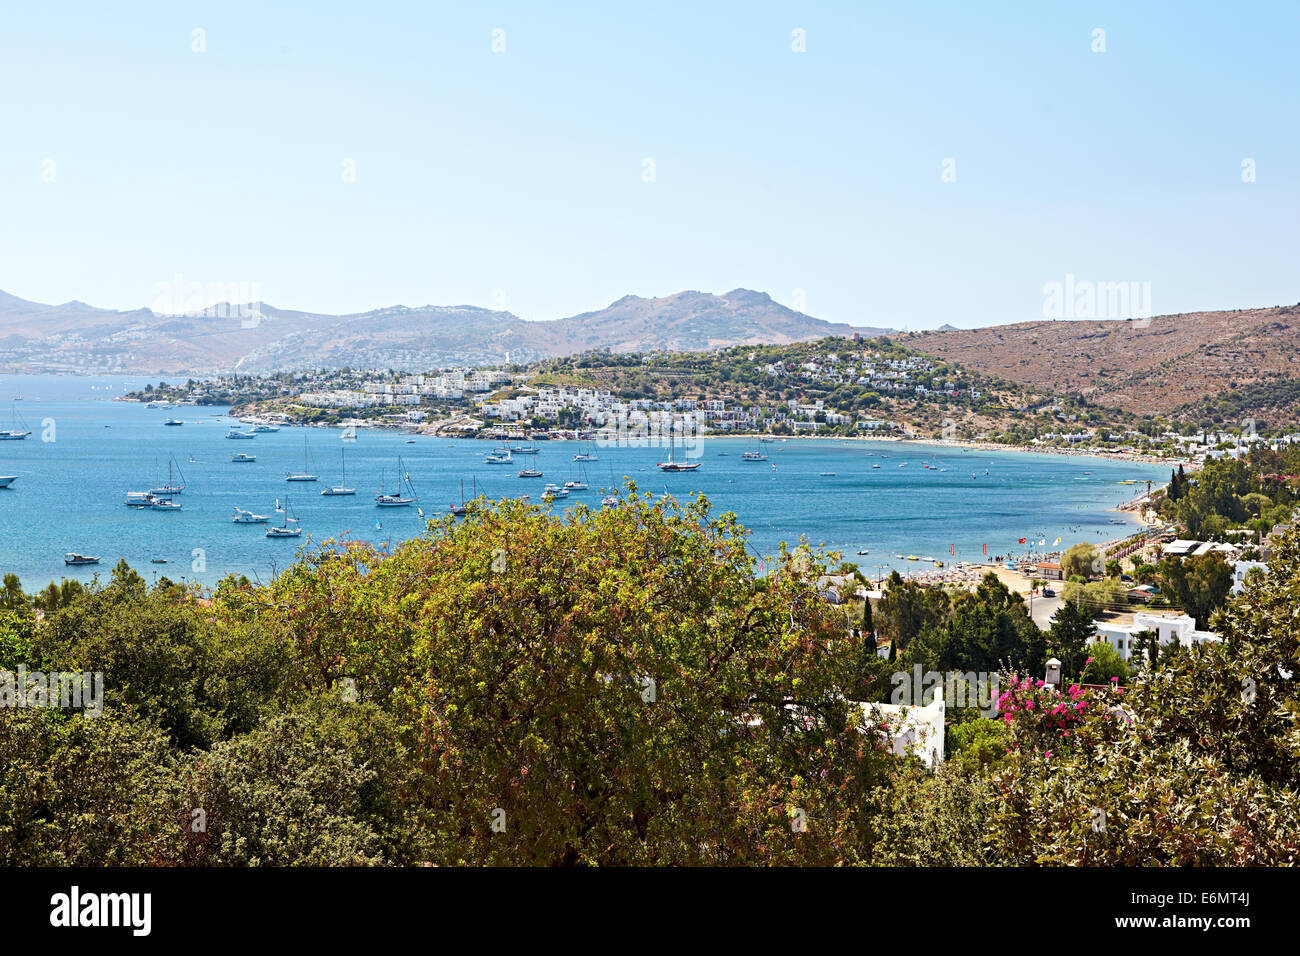 View over the bay looking out onto the boats and clear blue sea of Beyaz Beach Club, Bitez, Bodrum, Turkey - Stock Image